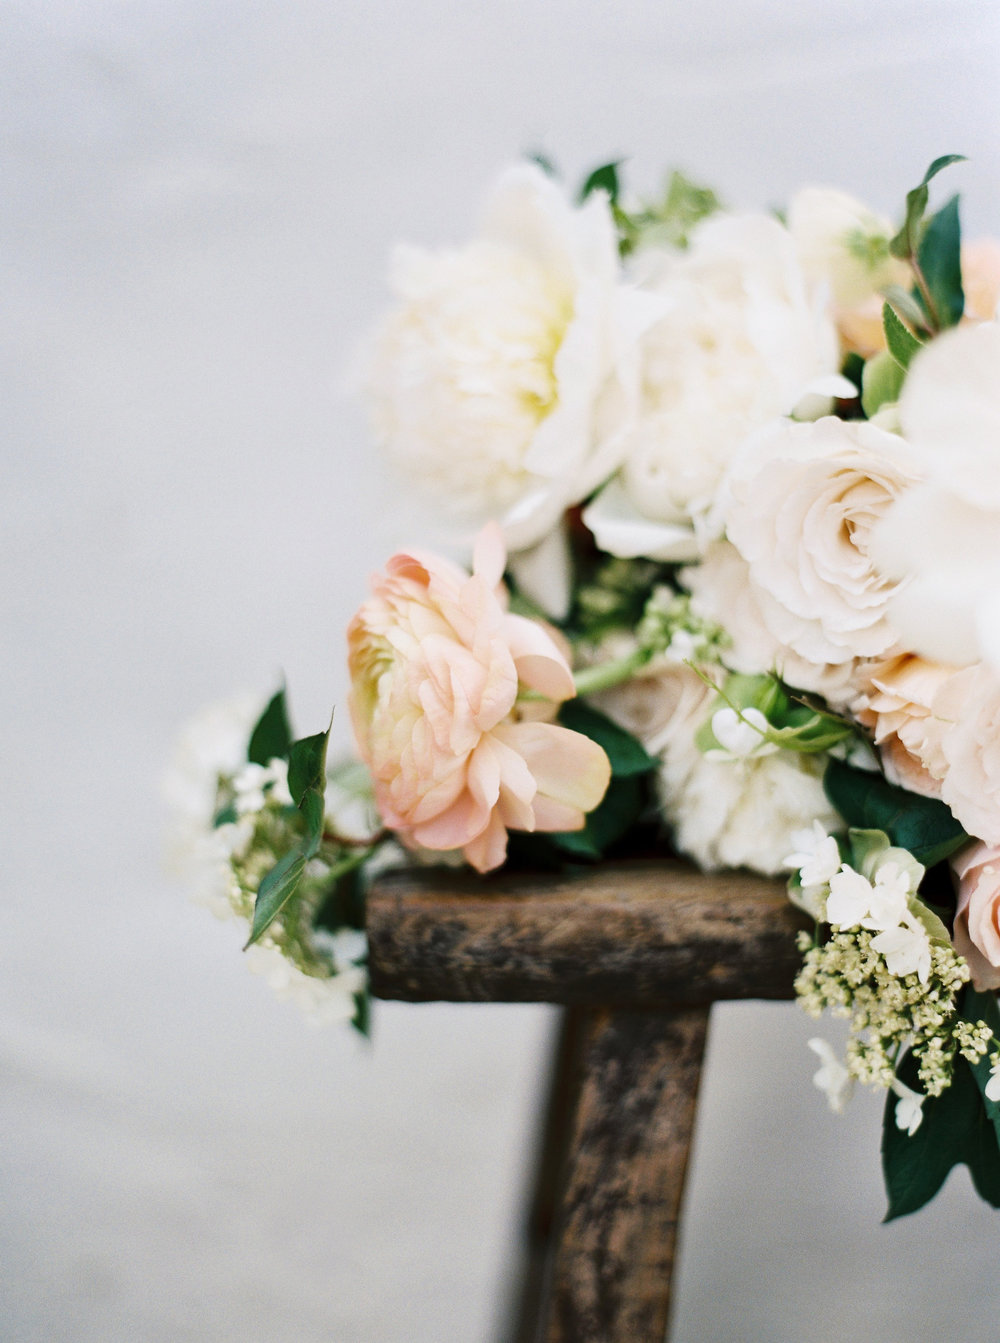 spring wedding flowers white and peach.jpg